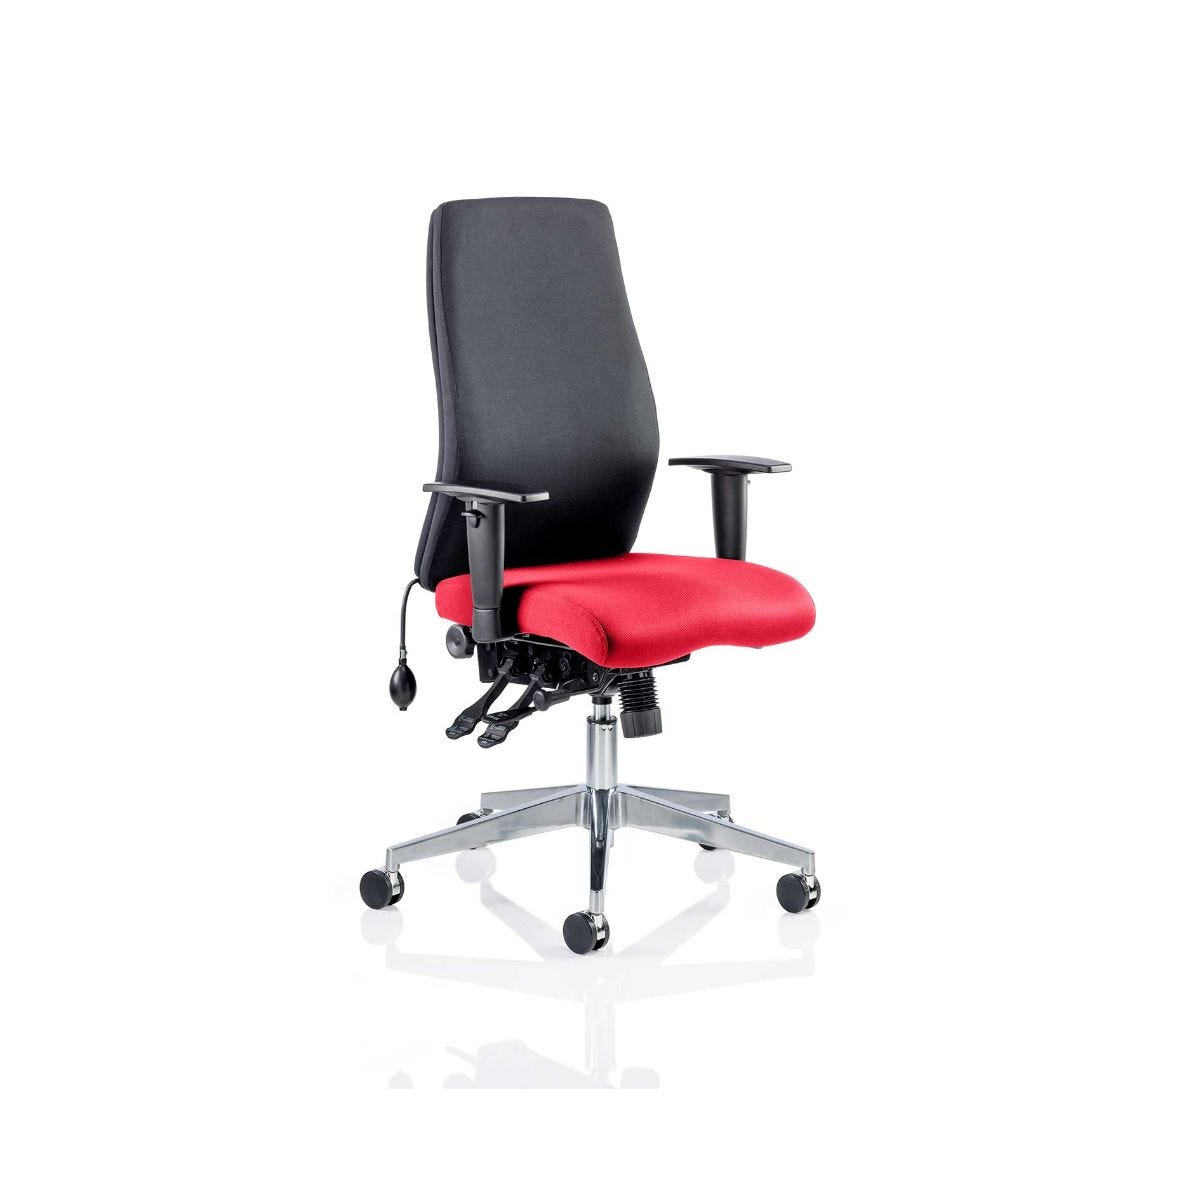 Onyx Office Chair, Bergamot